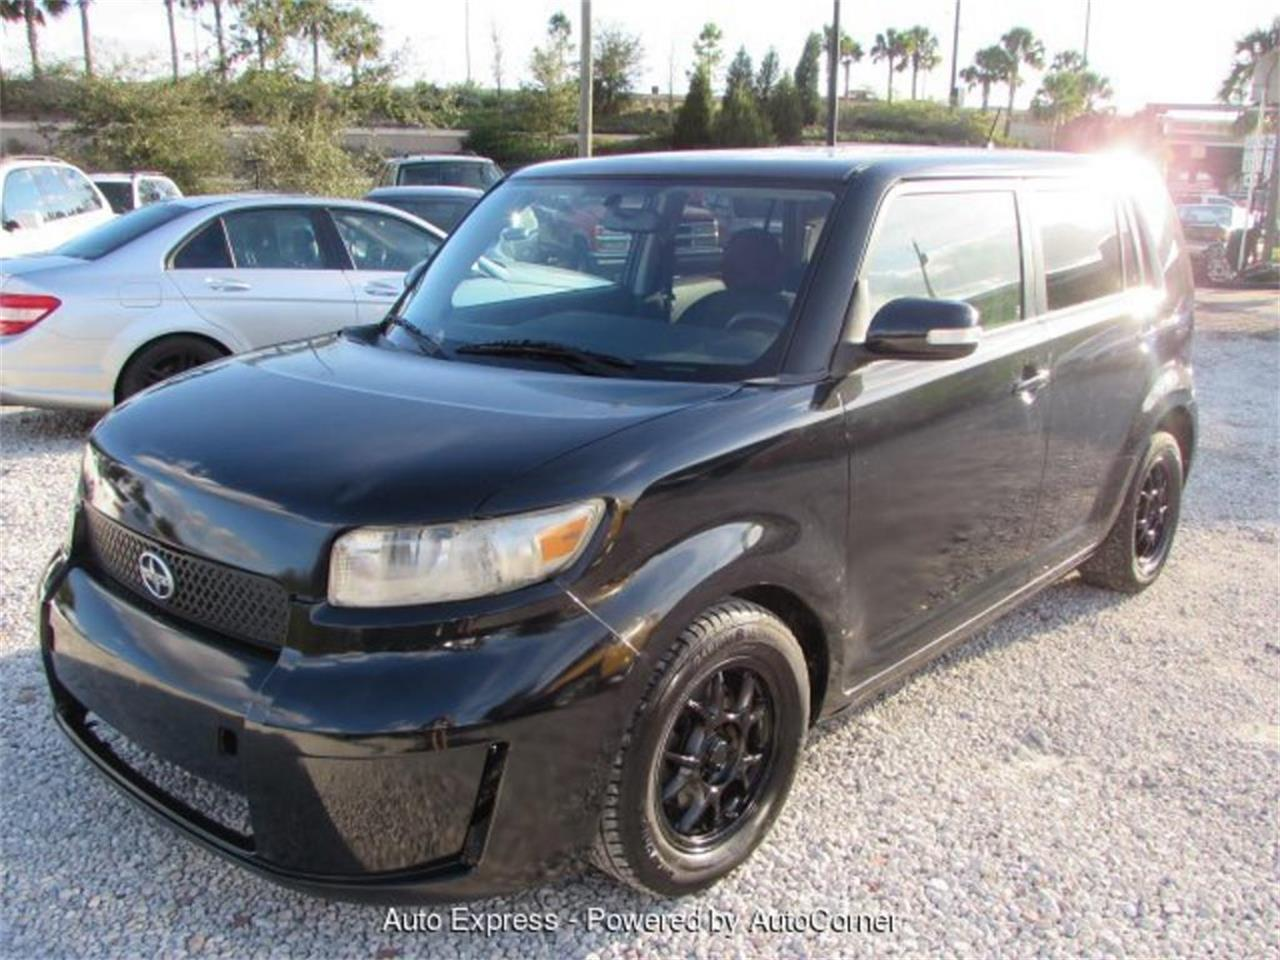 2008 Scion Xb for sale in Orlando, FL – photo 2